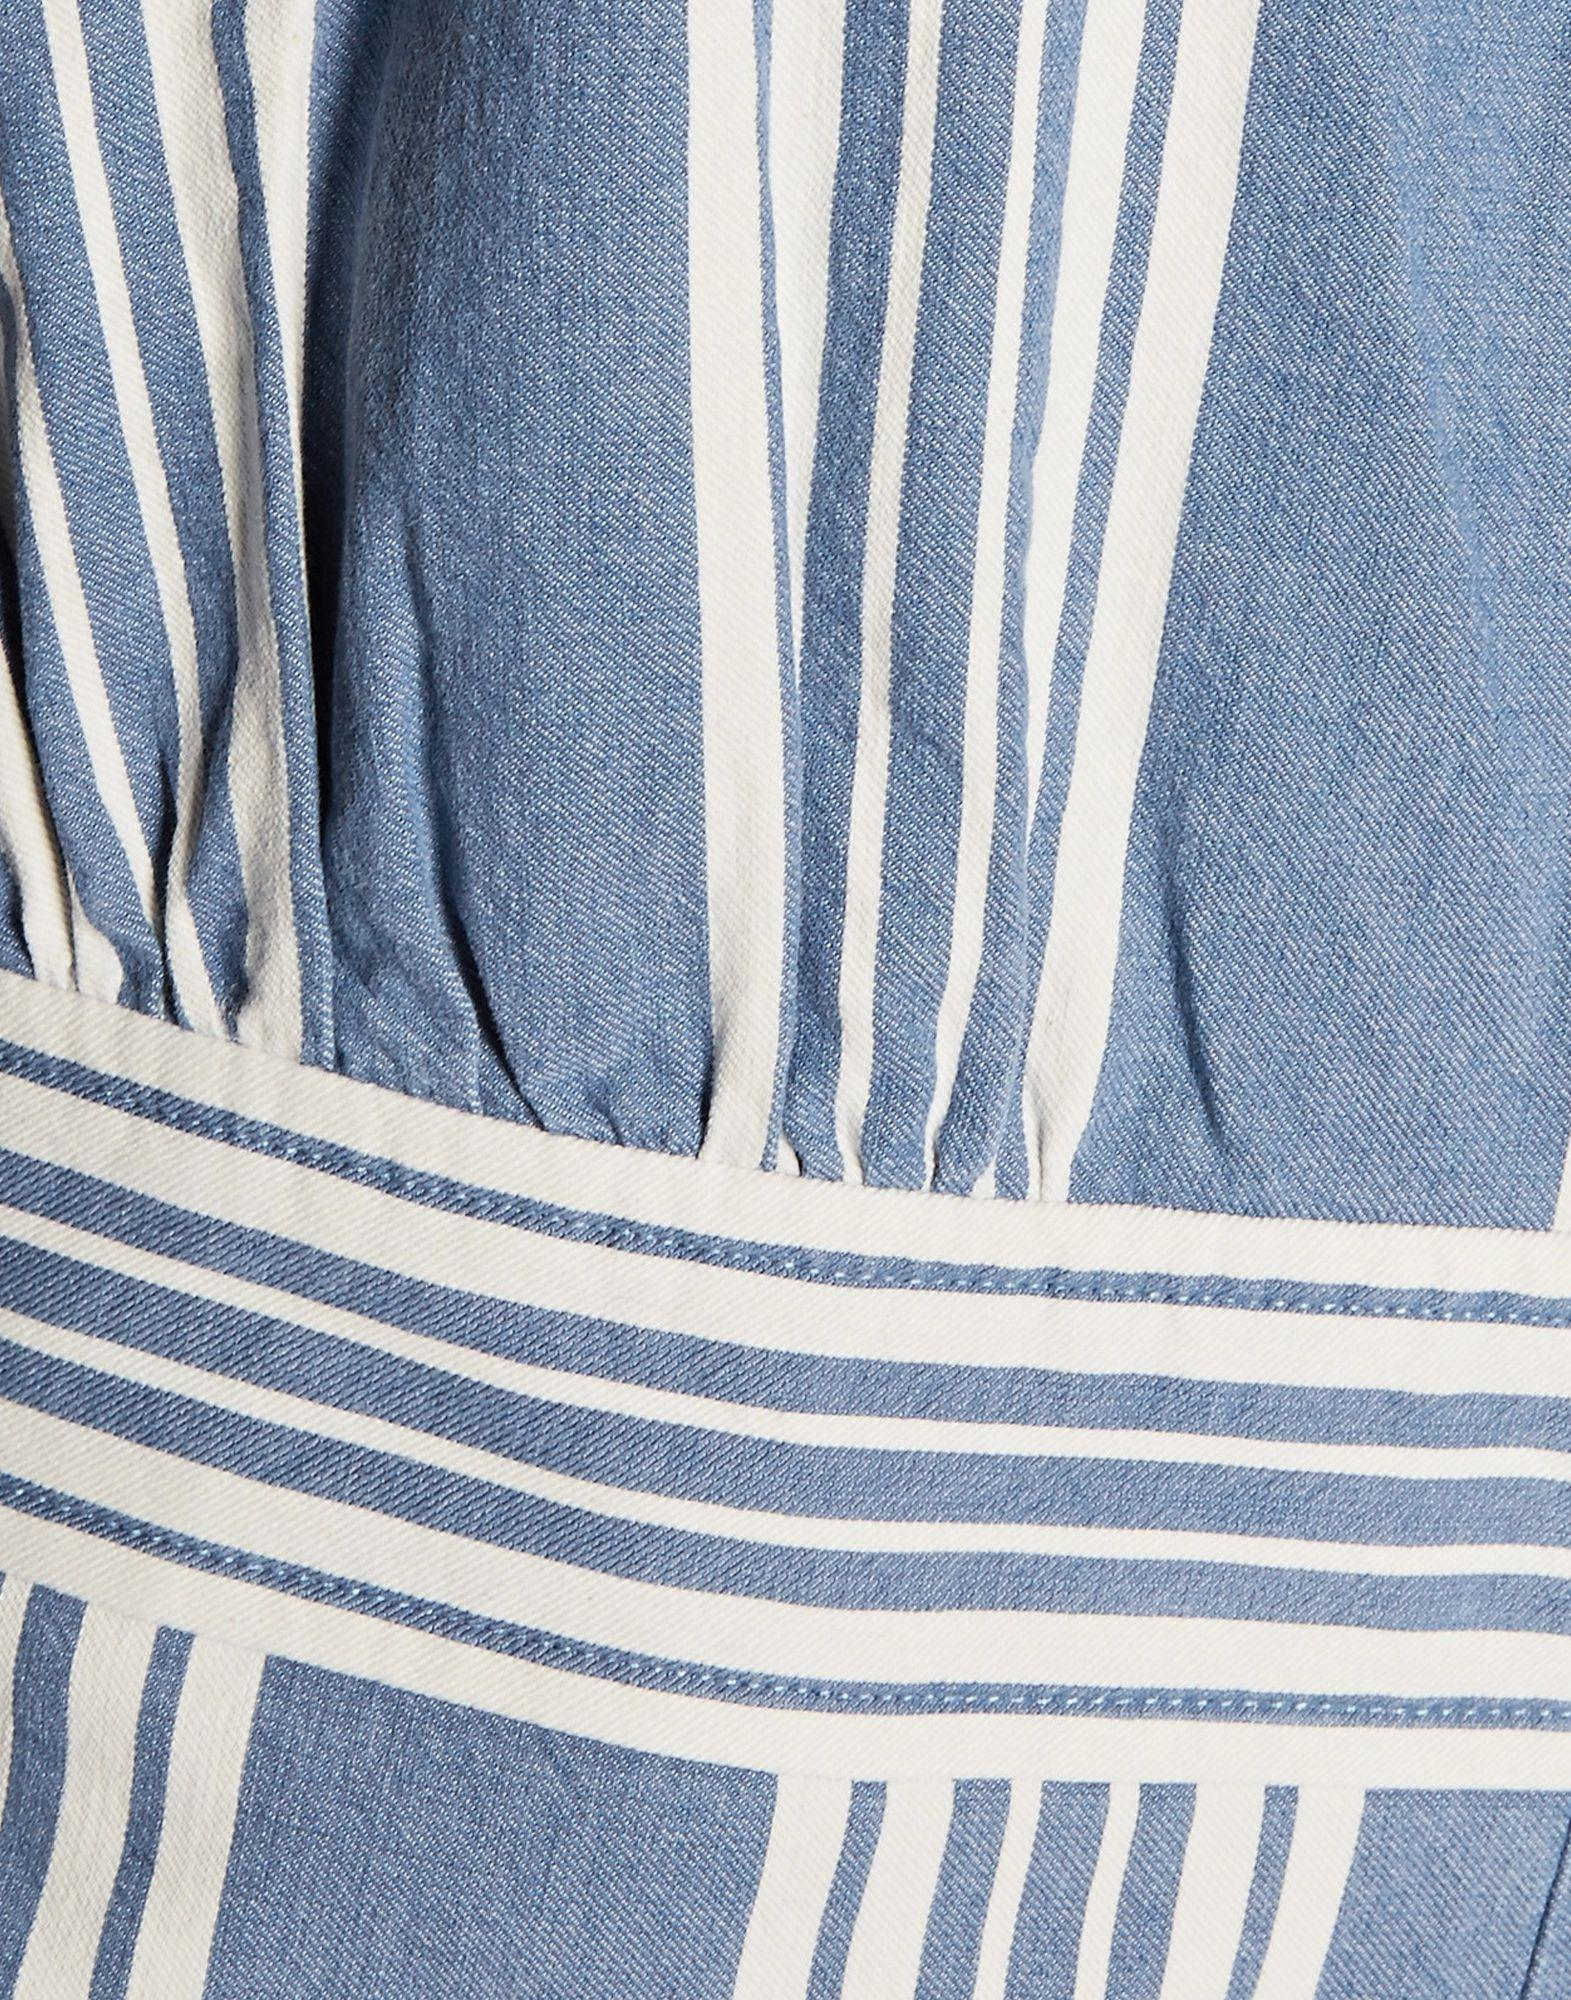 ddce5d8a32c M.i.h Jeans Striped Cotton-chambray Jumpsuit Mid Denim Size Xs in Blue -  Save 69.62616822429906% - Lyst